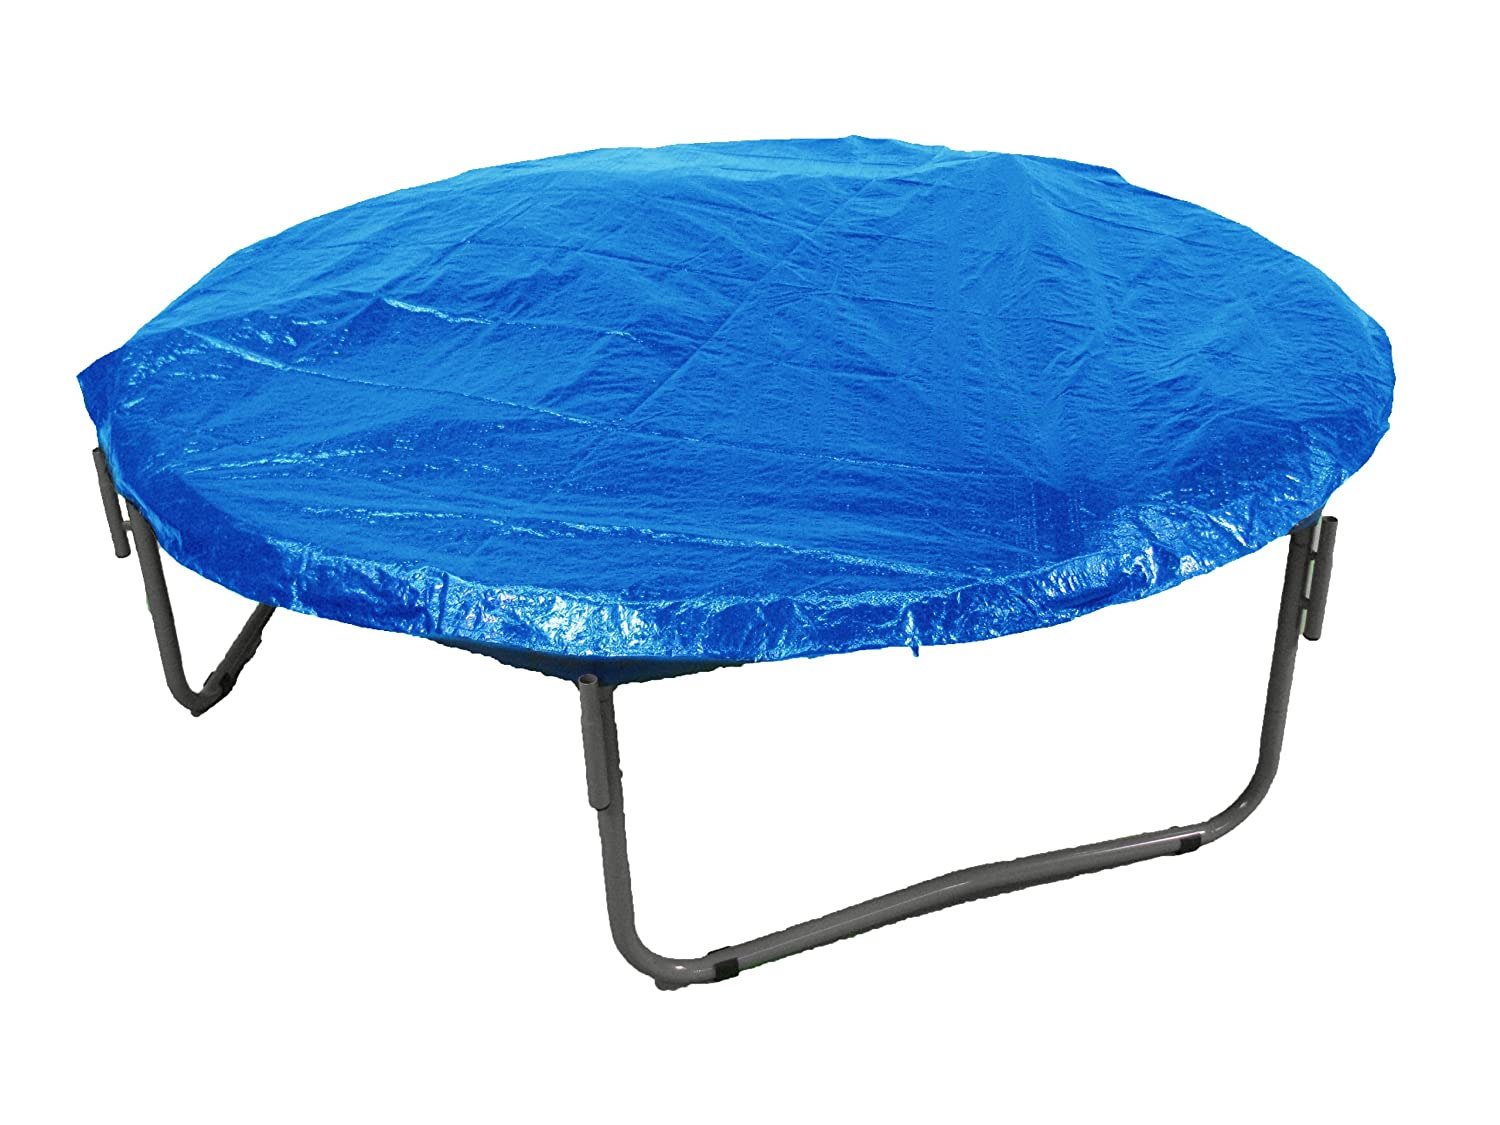 Economy Trampoline Weather Protection Cover, Fits for Skywalker Model # SWTC1200 Upper Bounce